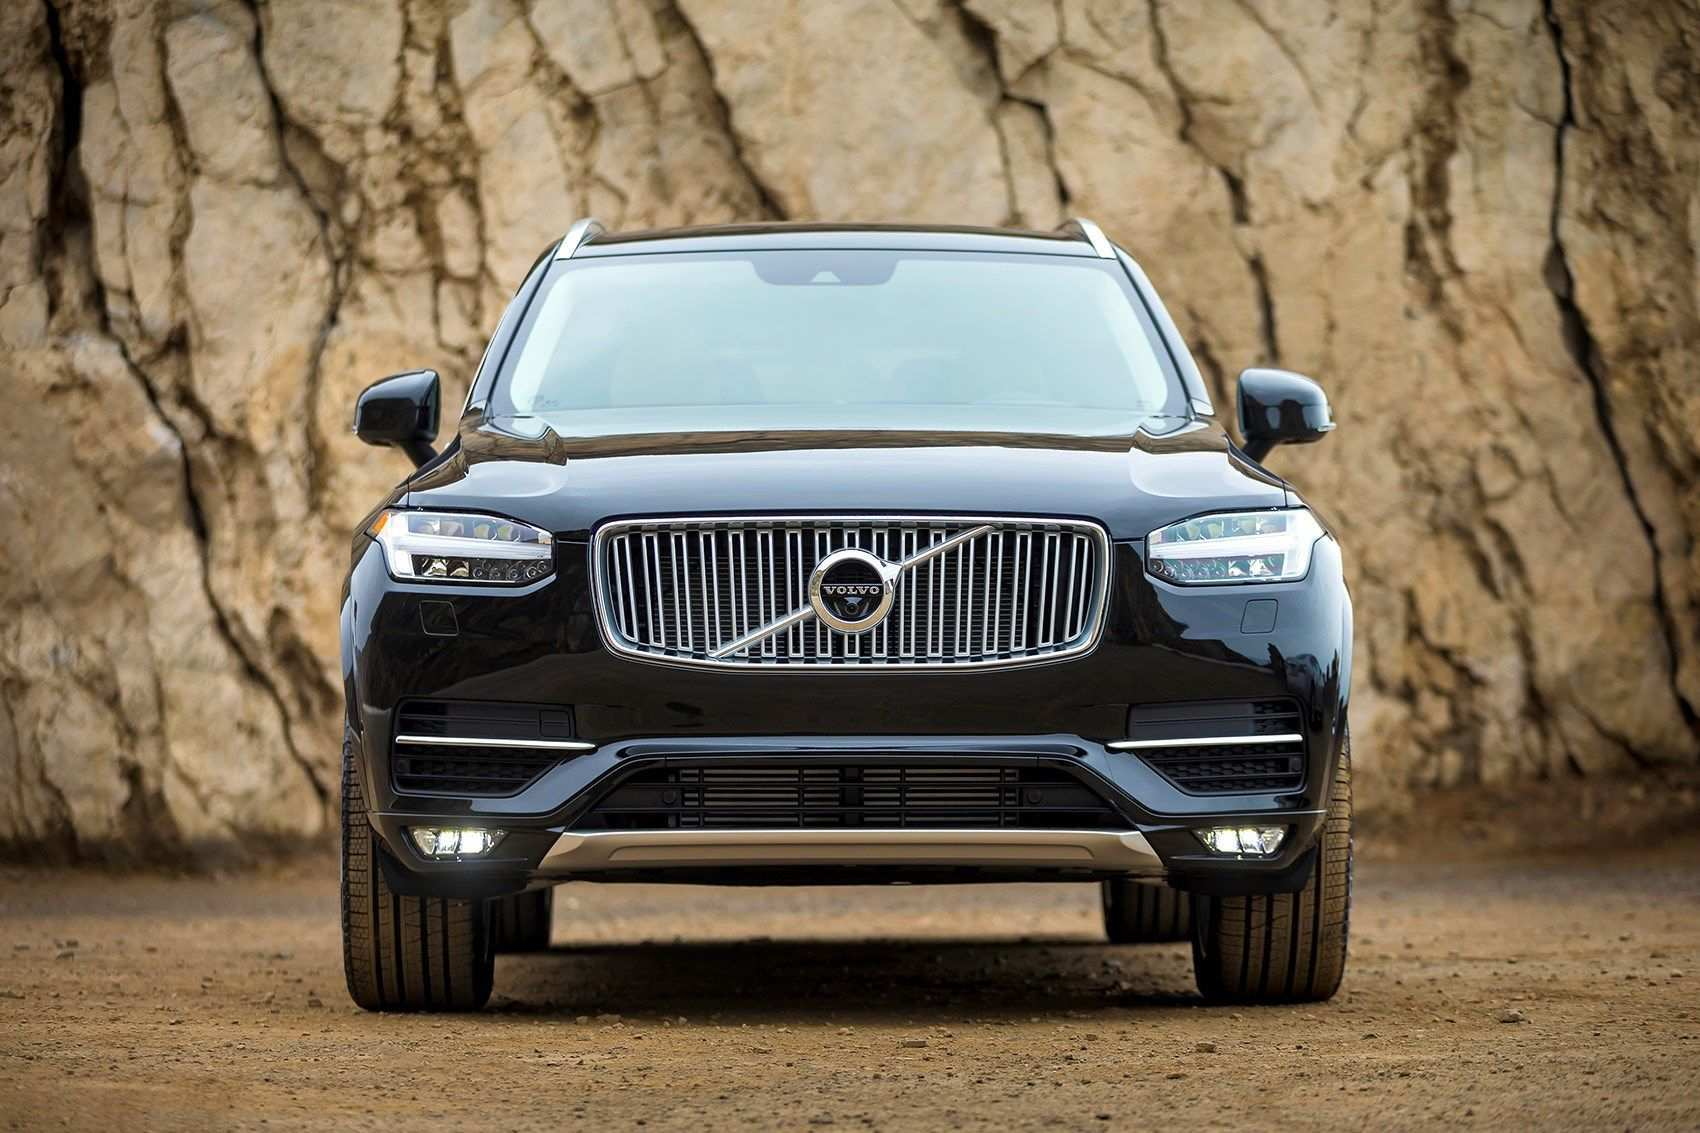 83 New Volvo 2020 All Electric Specs with Volvo 2020 All Electric